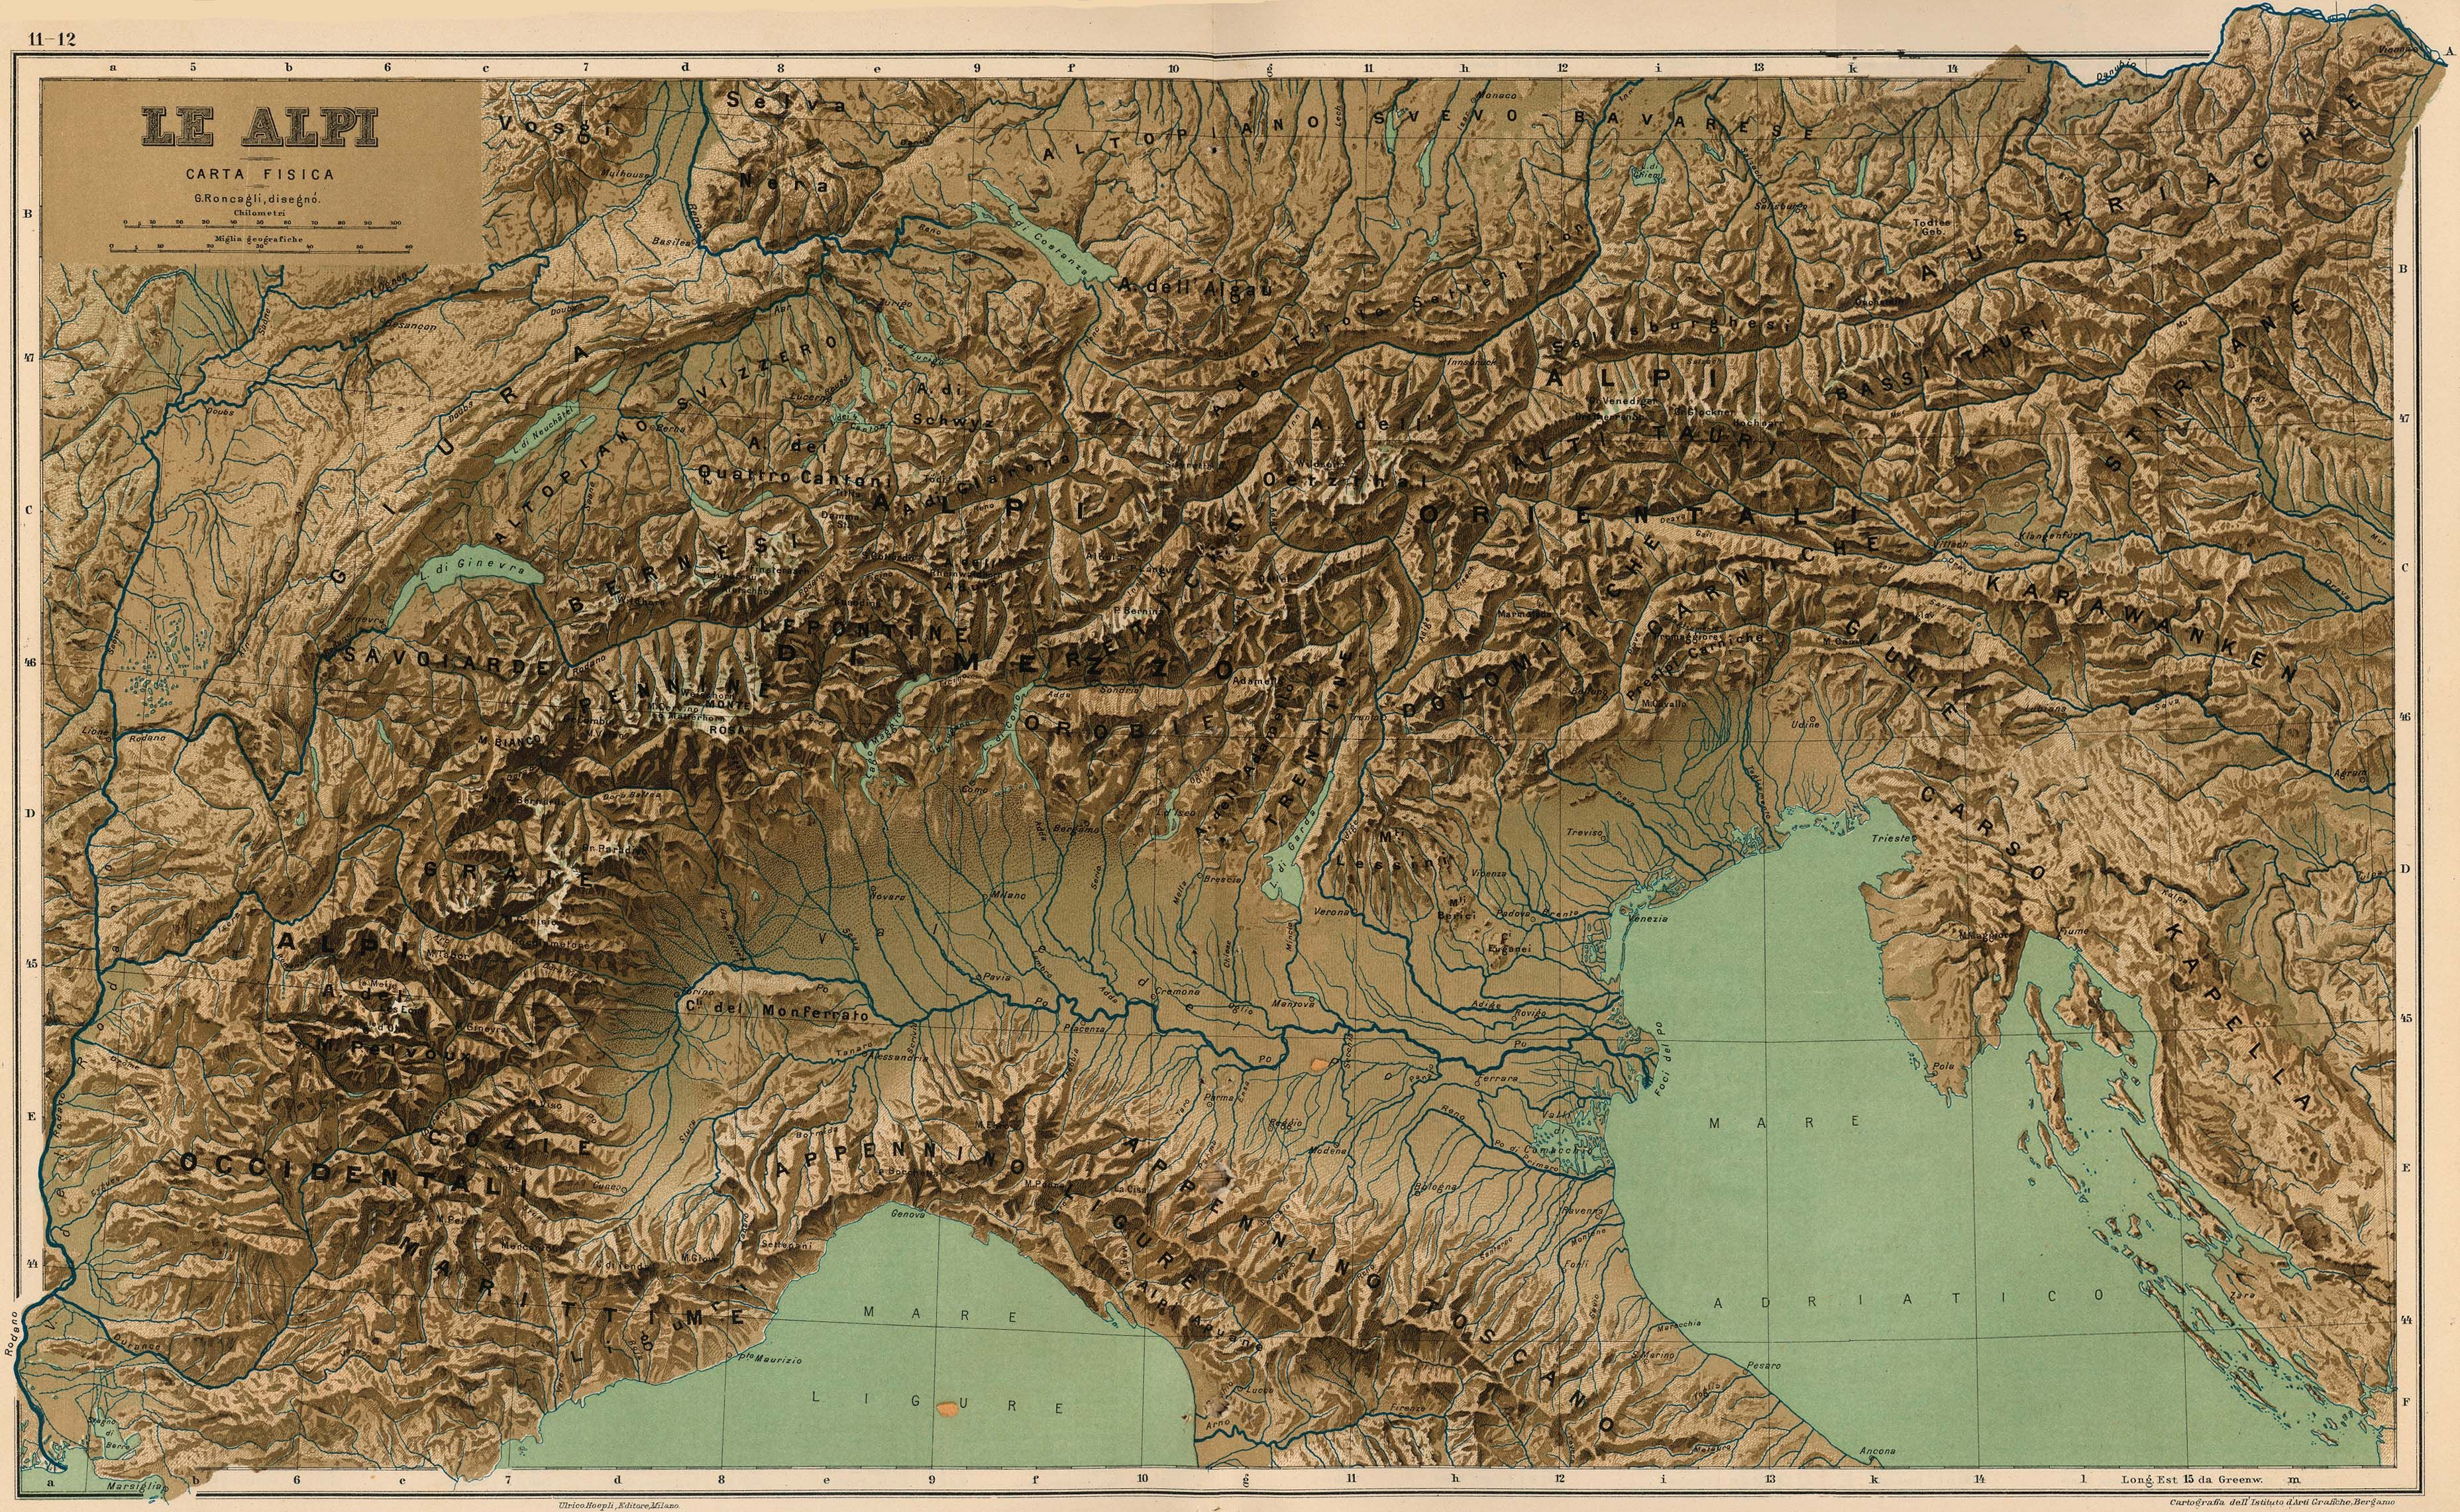 Le Alpi, 1899 (awesome topographic map of the Alps) | Where in the ...